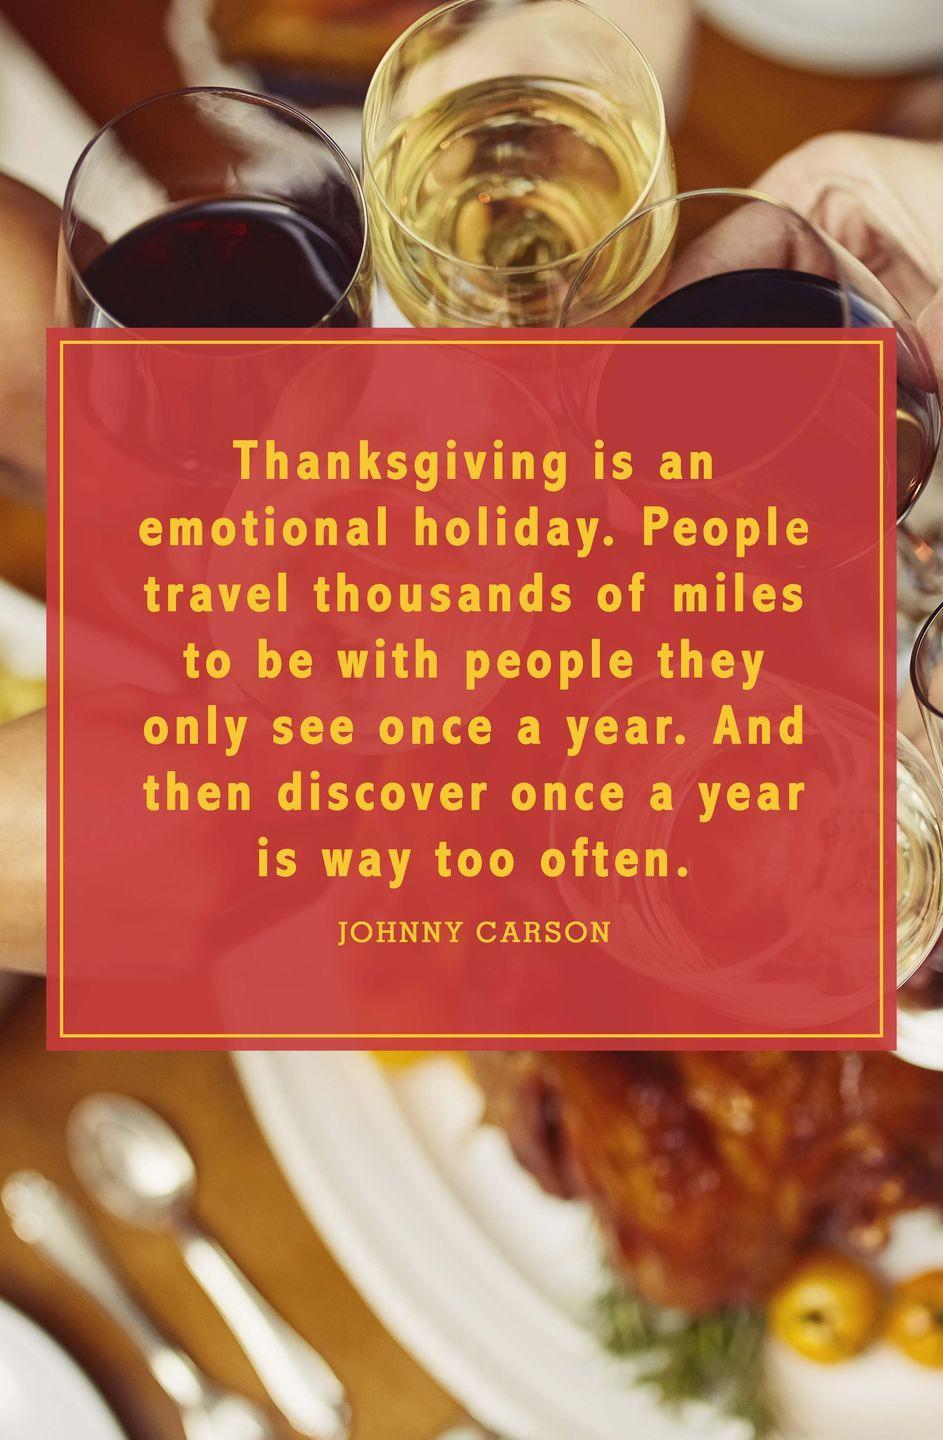 "<p>""Thanksgiving is an emotional holiday. People travel thousands of miles to be with people they only see once a year. And then discover once a year is way too often.""</p>"